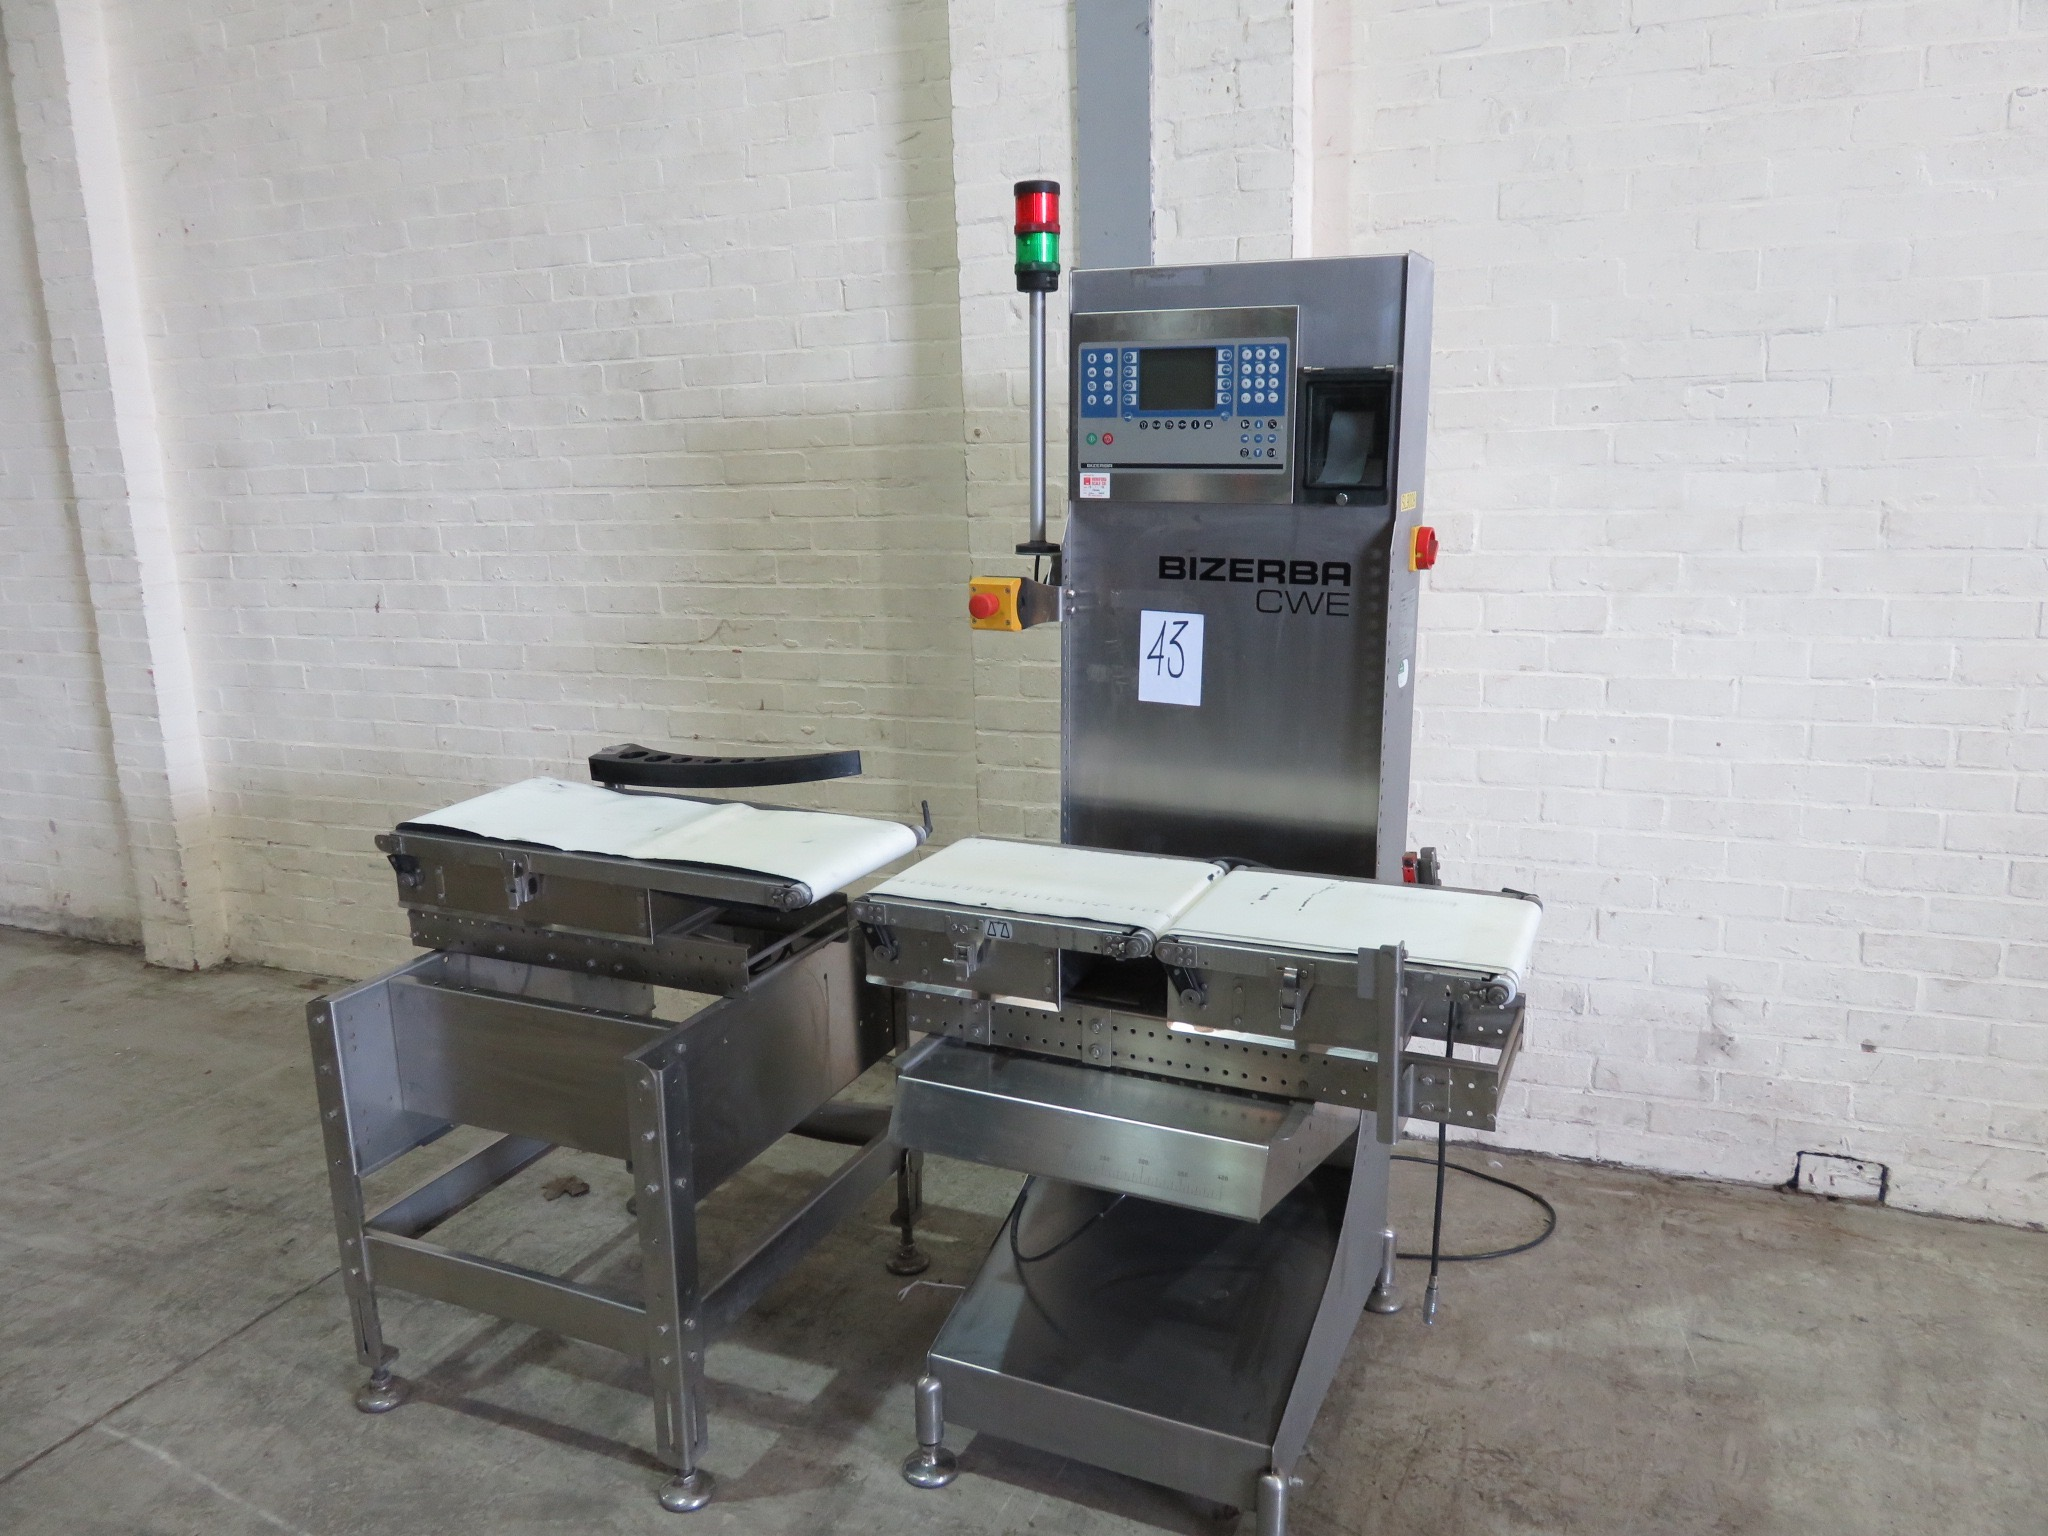 Lot 43 - Bizerba CWE Check Weigher. Platform 420 long x 300 wide. With printer. Push arm reject LIFT OUT £10